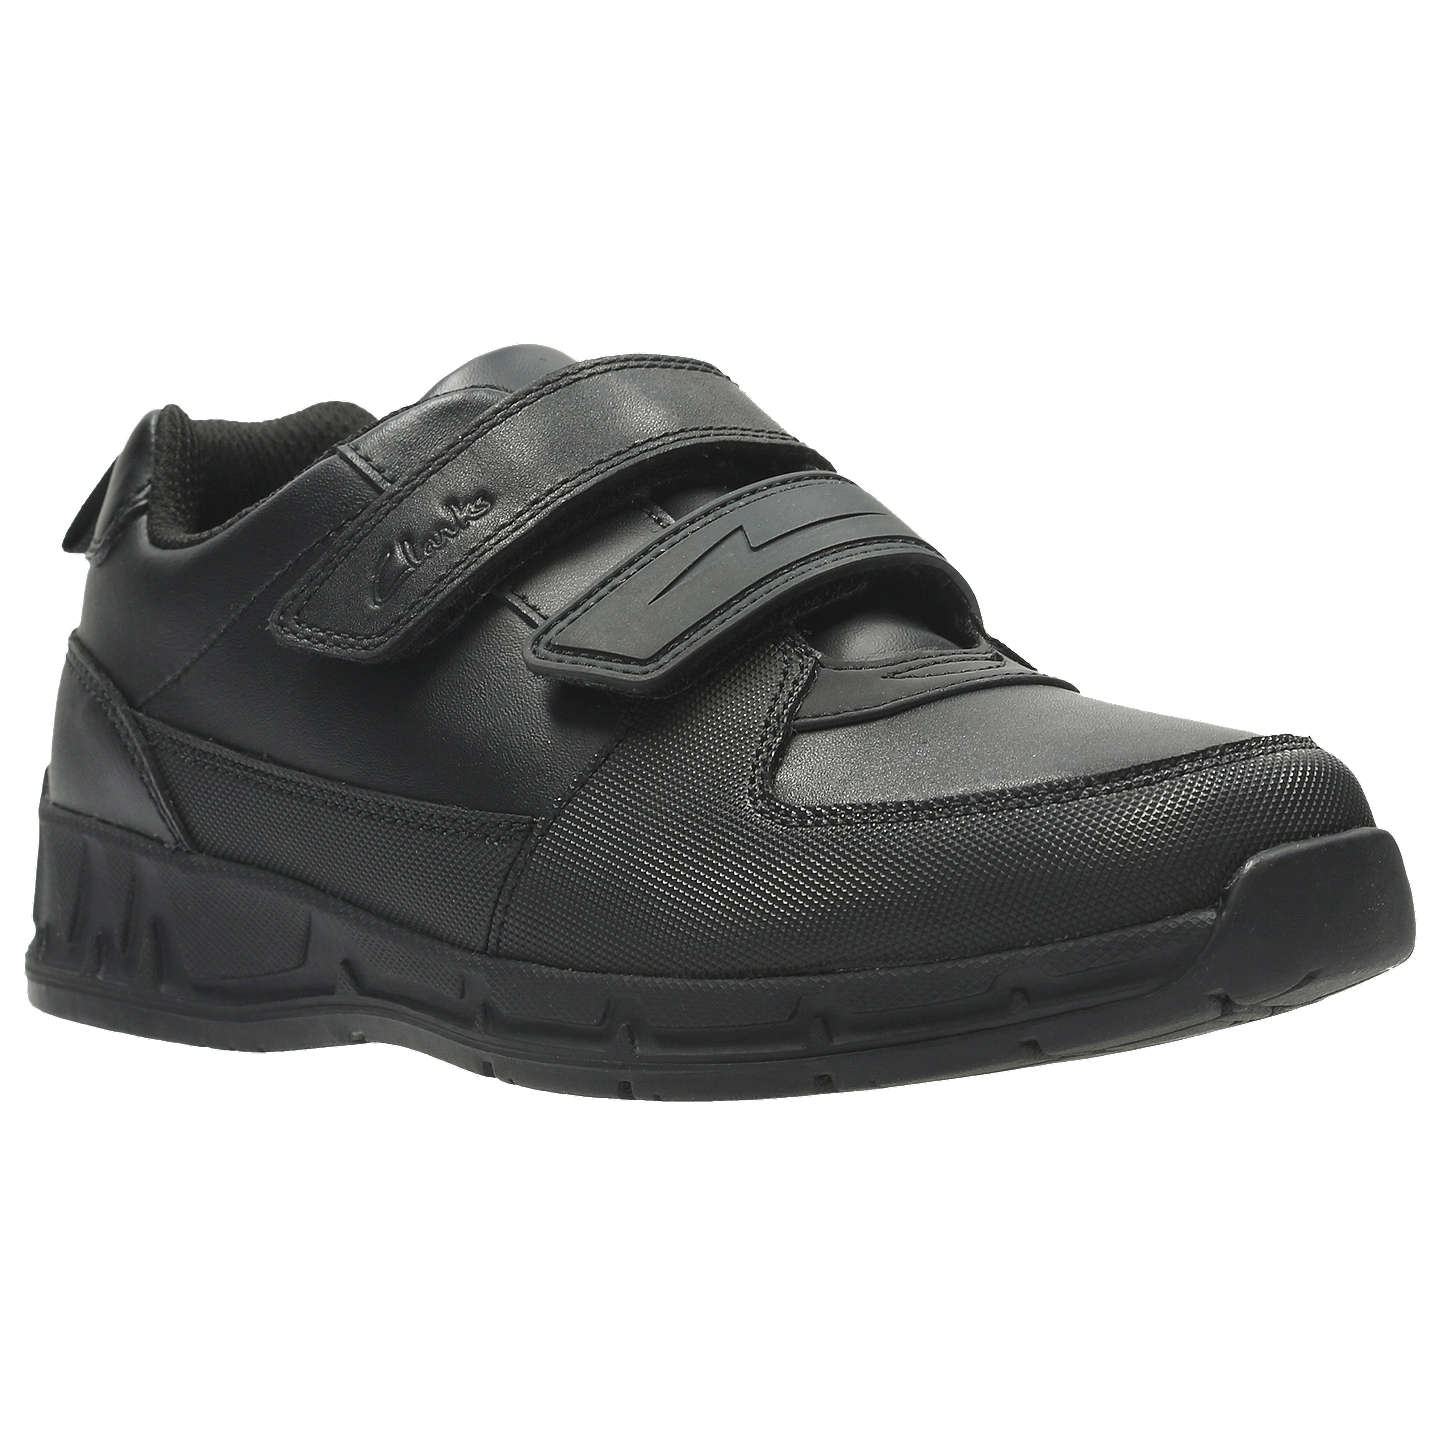 BuyClarks Children's Gloforms Maris Fire Junior School Shoes, Black, 13E  Online at johnlewis.